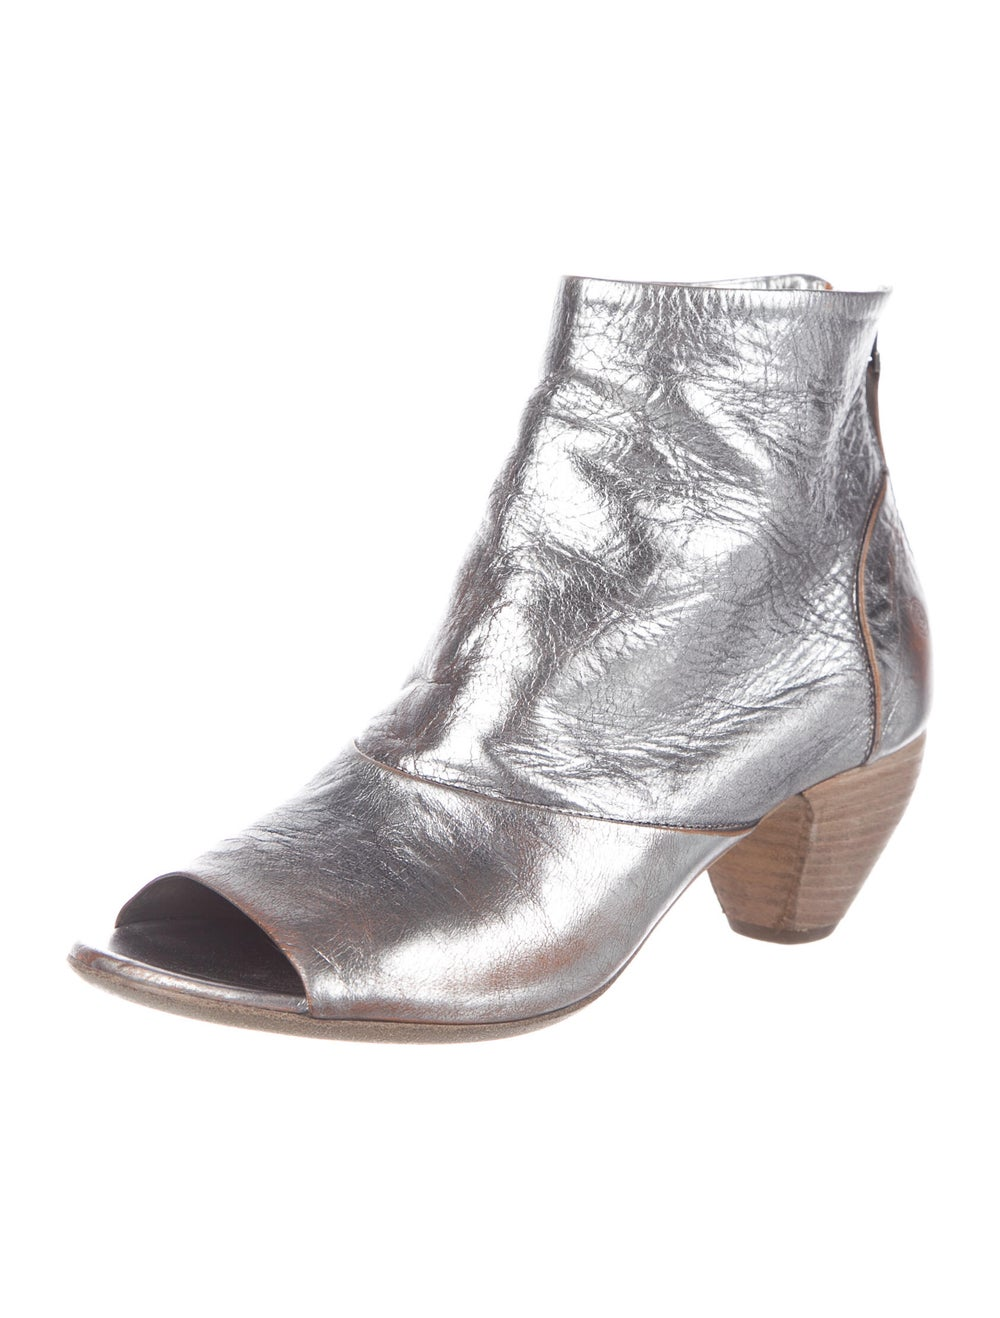 Marsèll Signature Logo Leather Boots Metallic - image 2